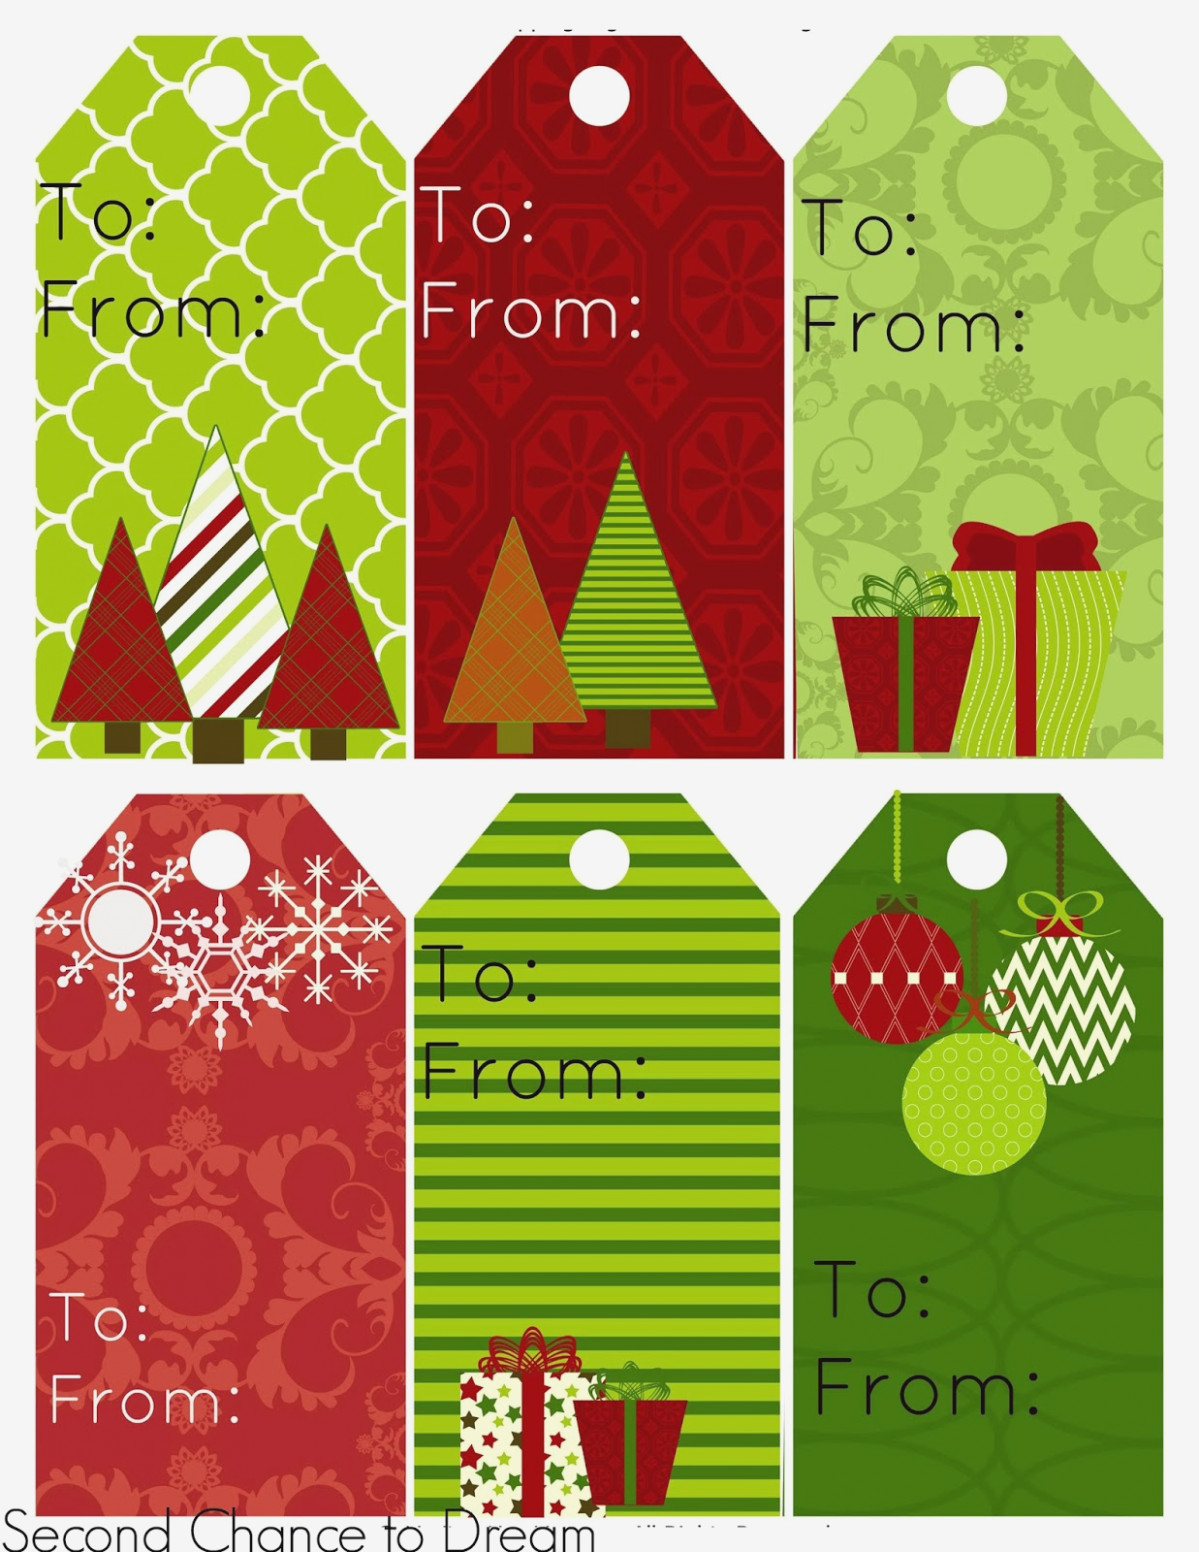 Free Personalized Christmas Gift Tags To Print – Fun For Christmas - Free Printable Gift Tags Personalized